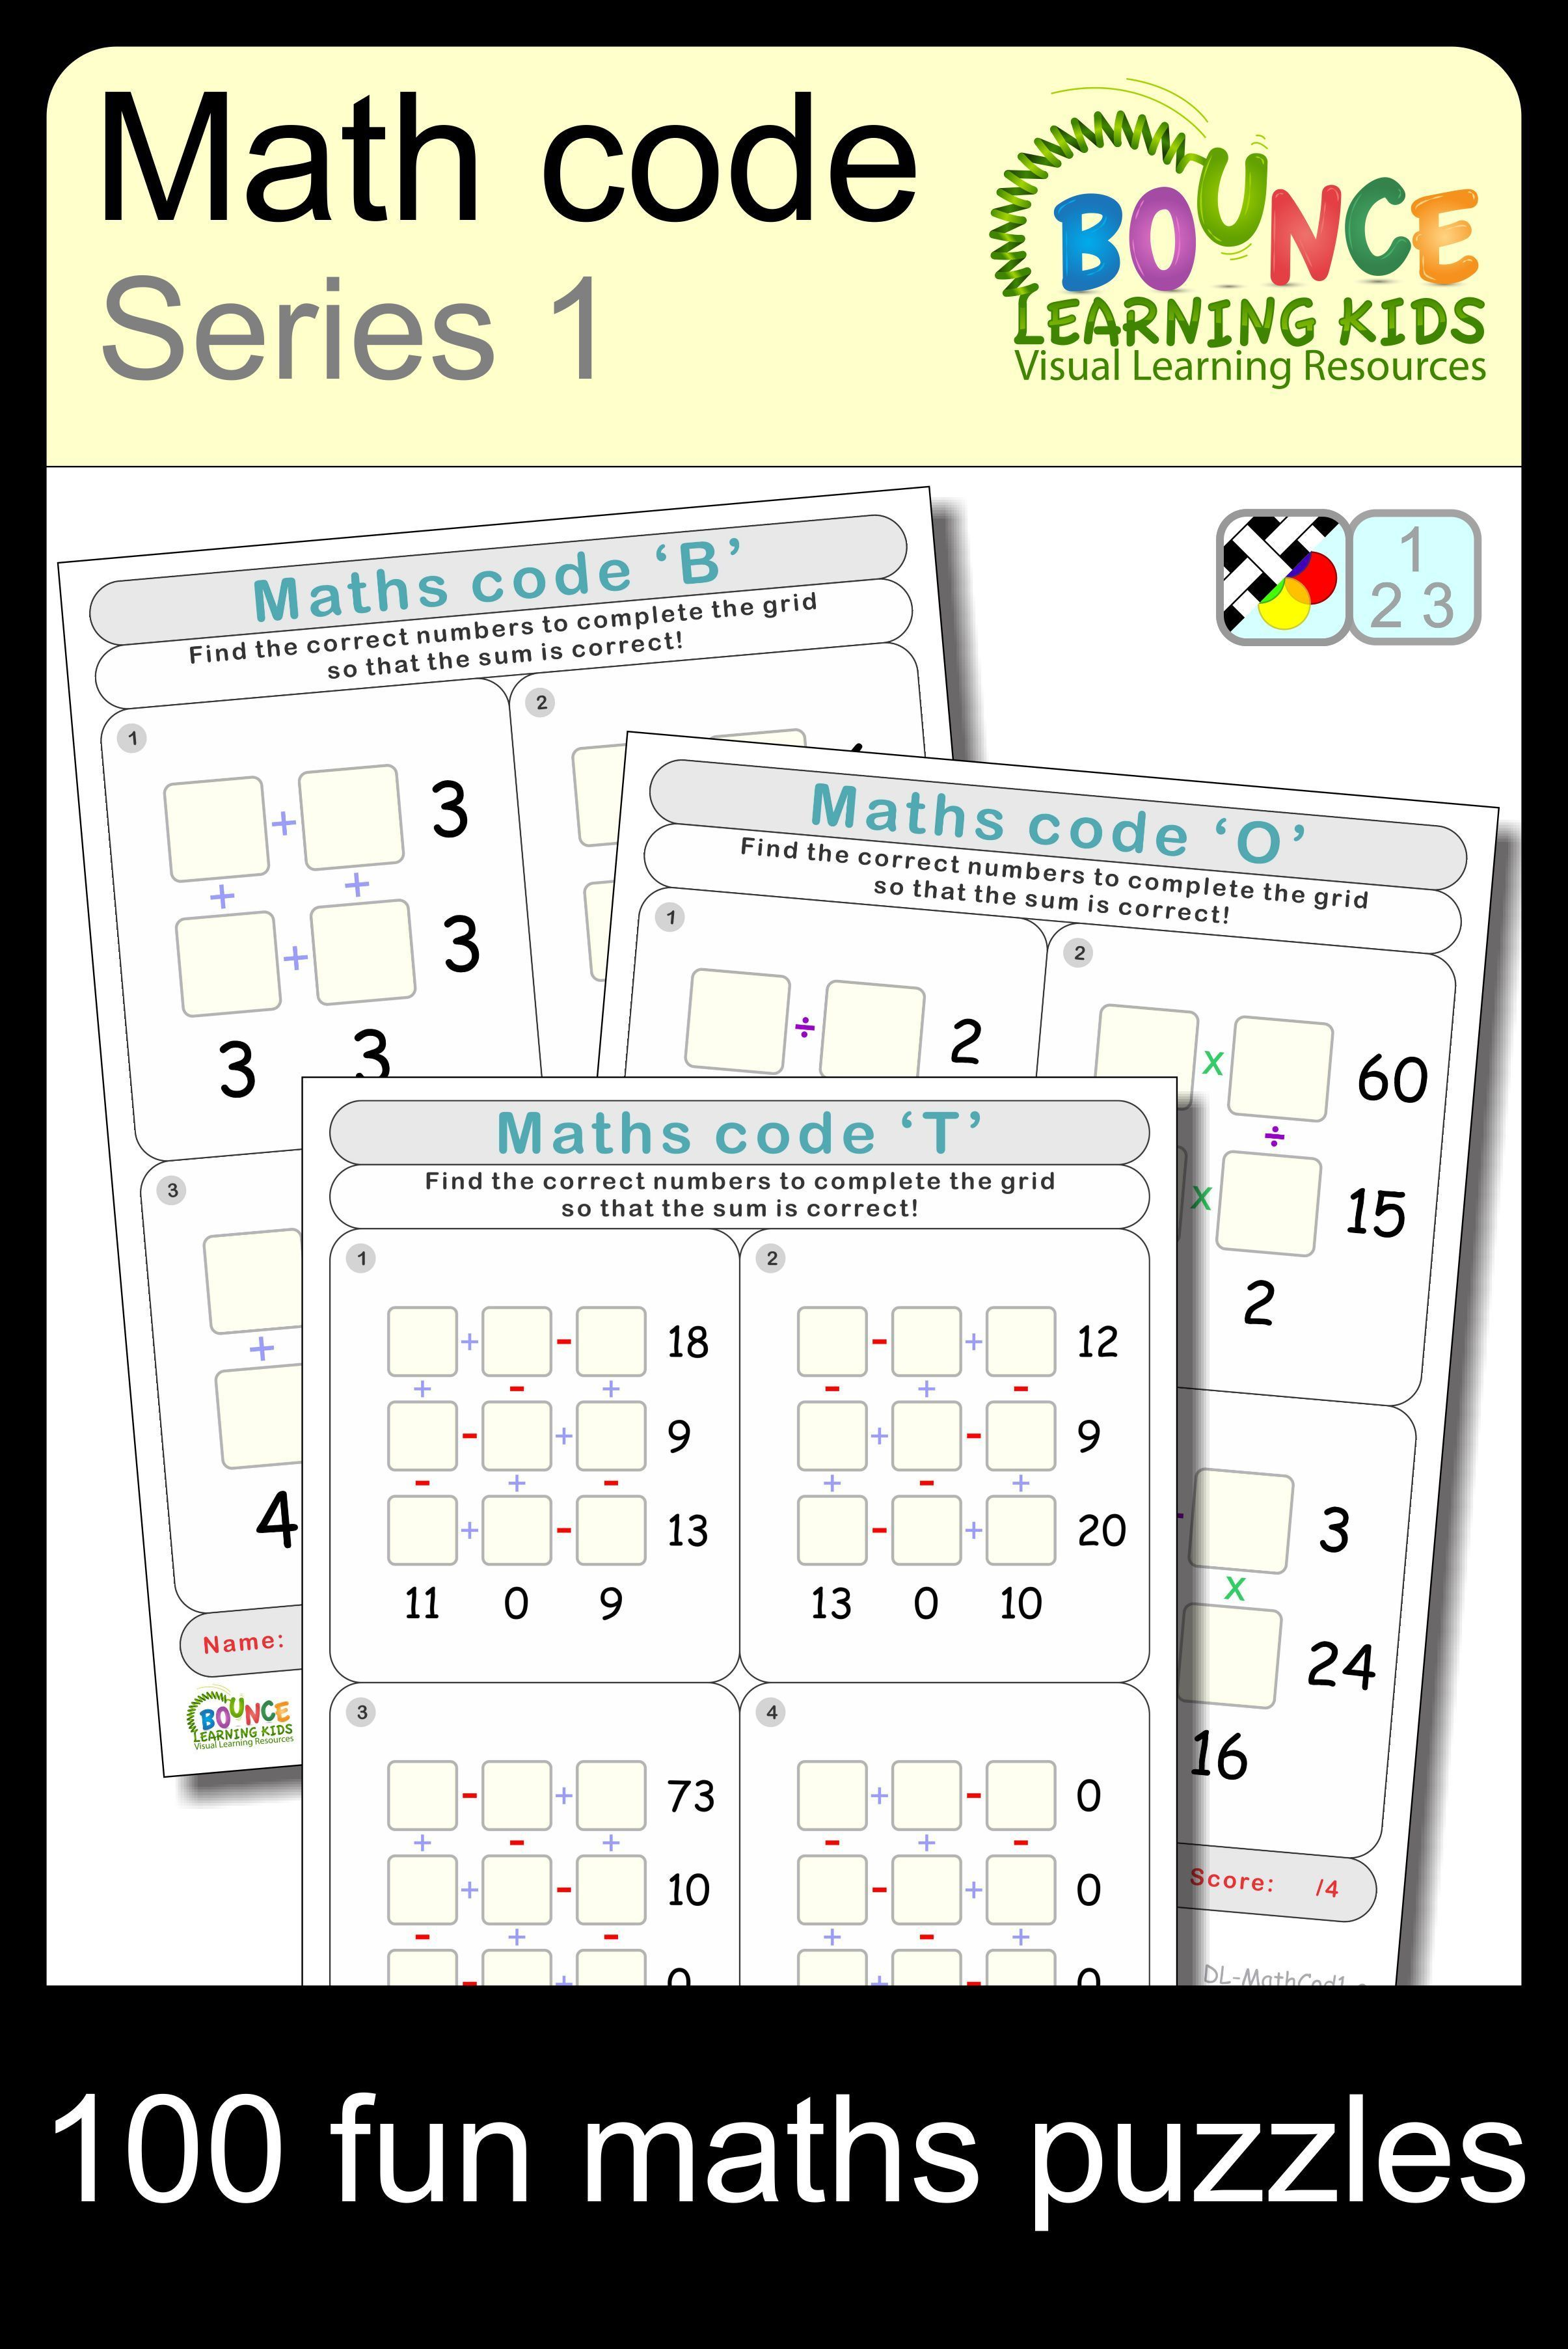 Fun Series Of Maths Code Worksheets Complete The Grid Of Numbers Such That The Resulting Equations Are Correct And Add Math Teaching Curriculum Learning Math